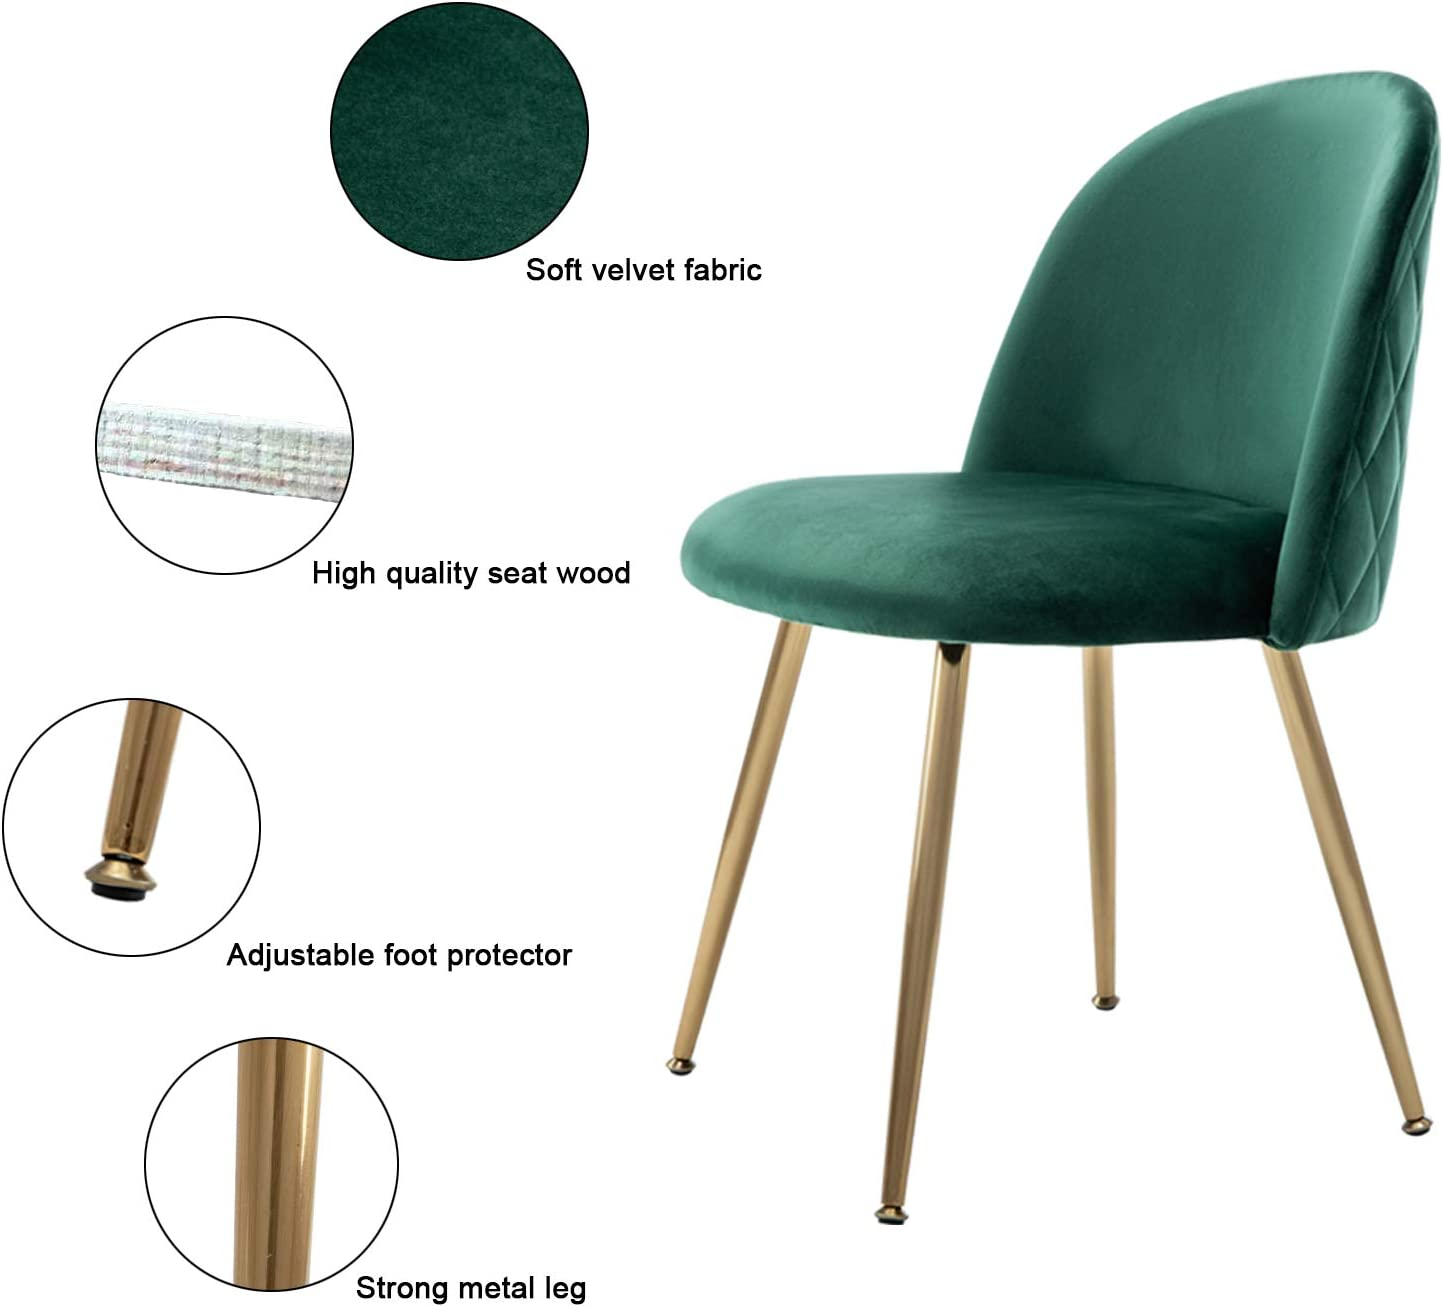 Modern Velvet Dining Chairs, Upholstered Living Room Leisure Chairs, Gold Accent Chairs for Dining Room Kitchen Vanity, Set of 2 – Green